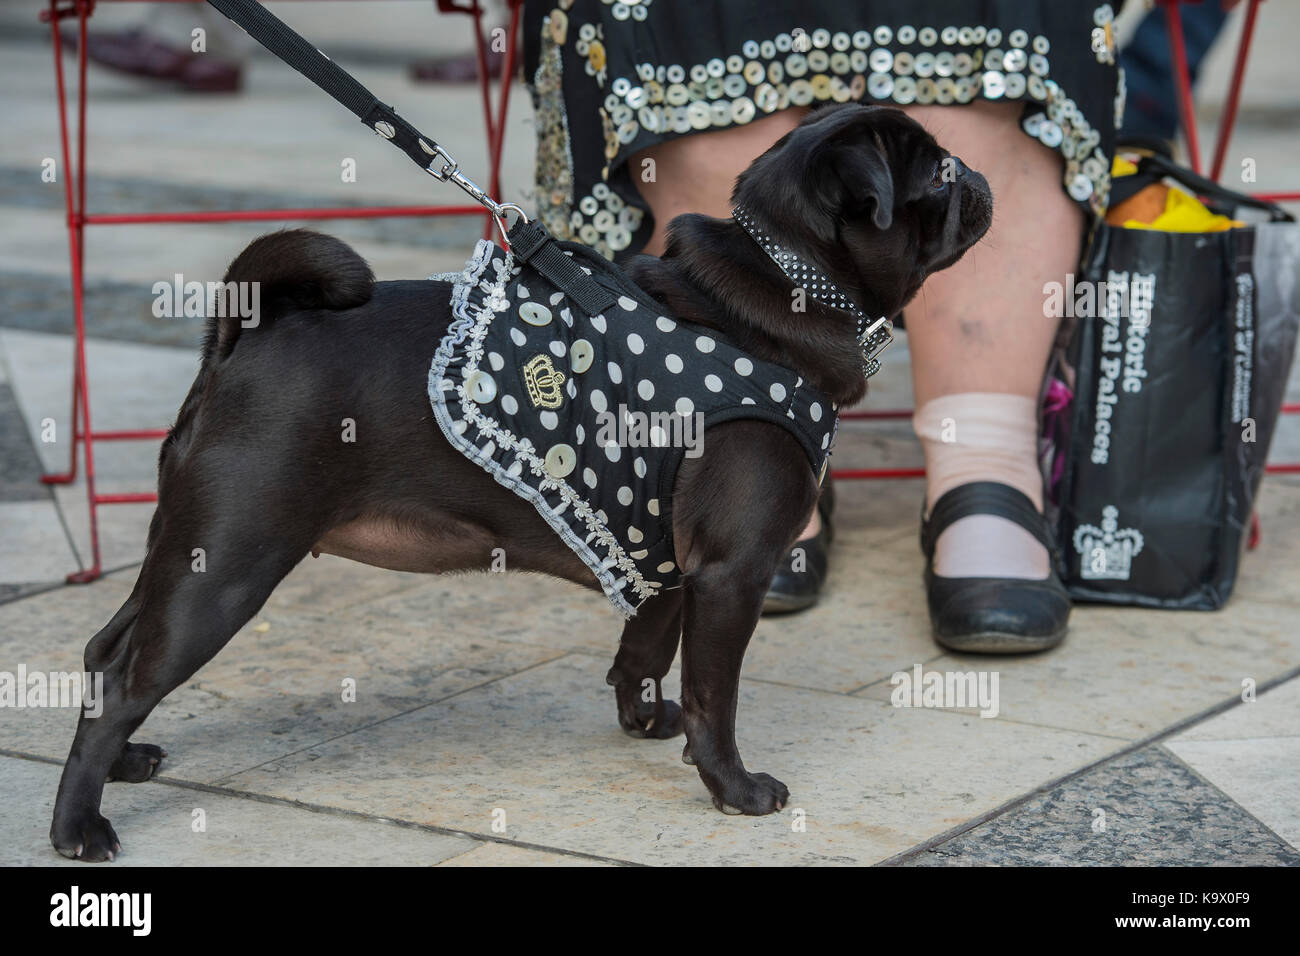 London, UK. 24th September, 2017. A Pearly Queens dog - The annual Harvest Festival organised by the Pearly Society - Stock Image